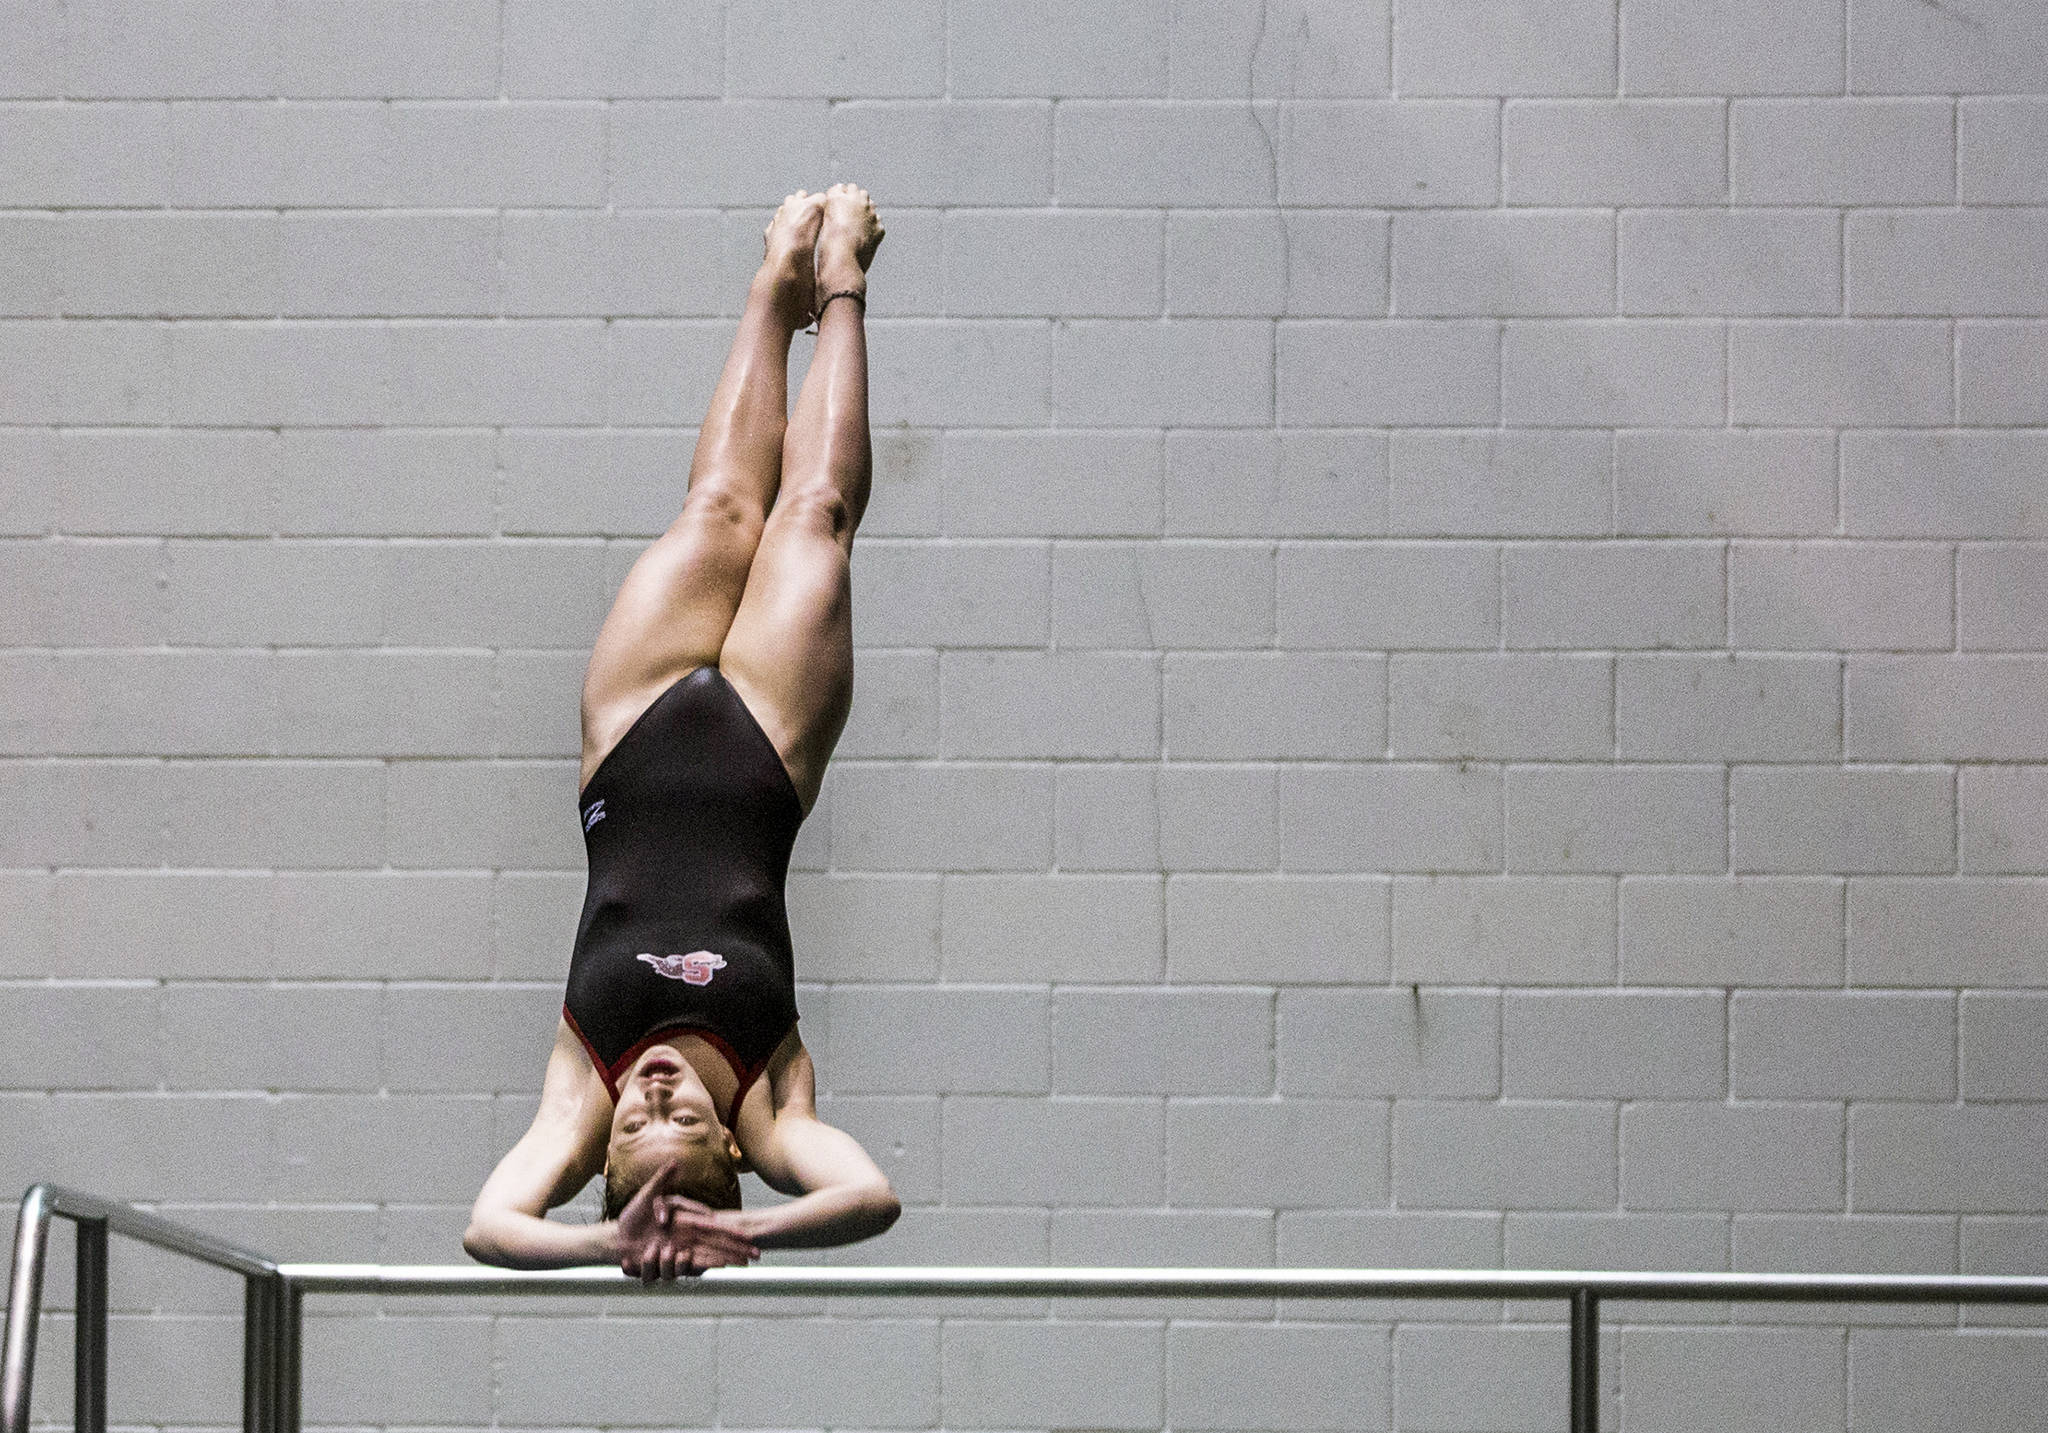 Snohomish's Kayli Koersavage dives during the WIAA 2018 State Swim & Dive Championships on Nov. 10 in Federal Way. (Olivia Vanni / The Herald)